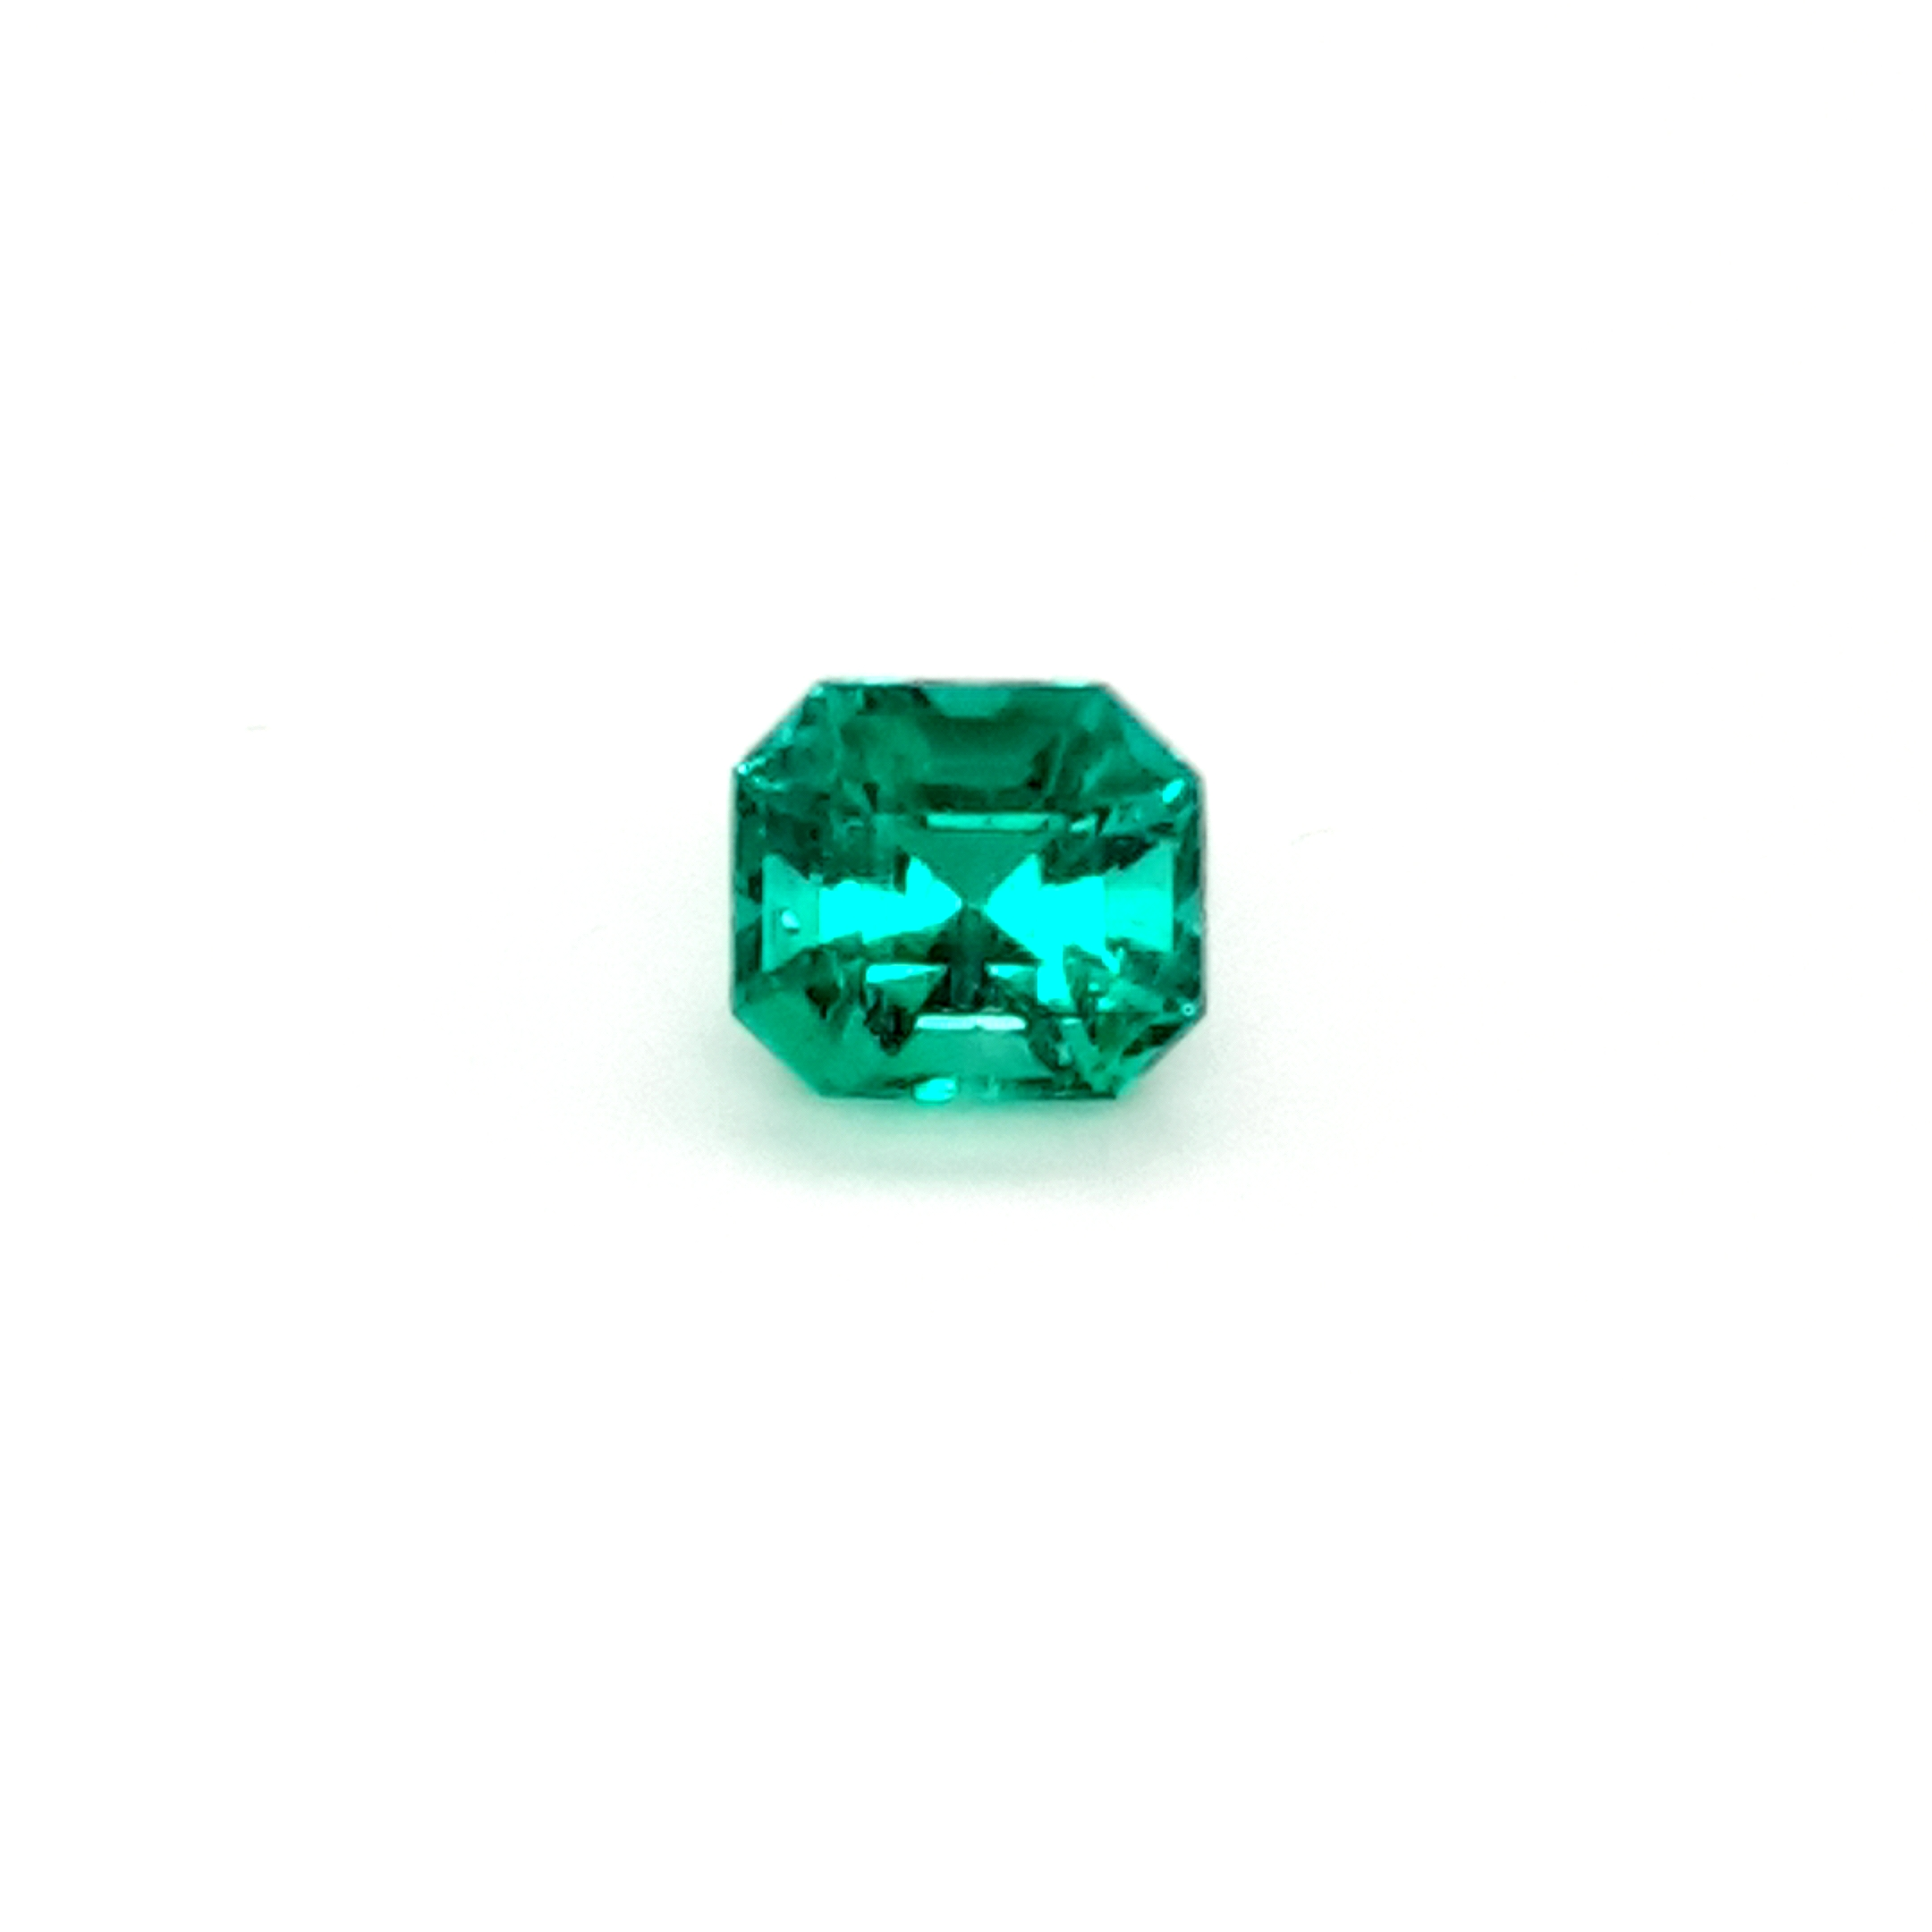 1,67ct. Emerald from Colombia EMF20D1 ClaudiaHamann__2021-03-28-23-40-48